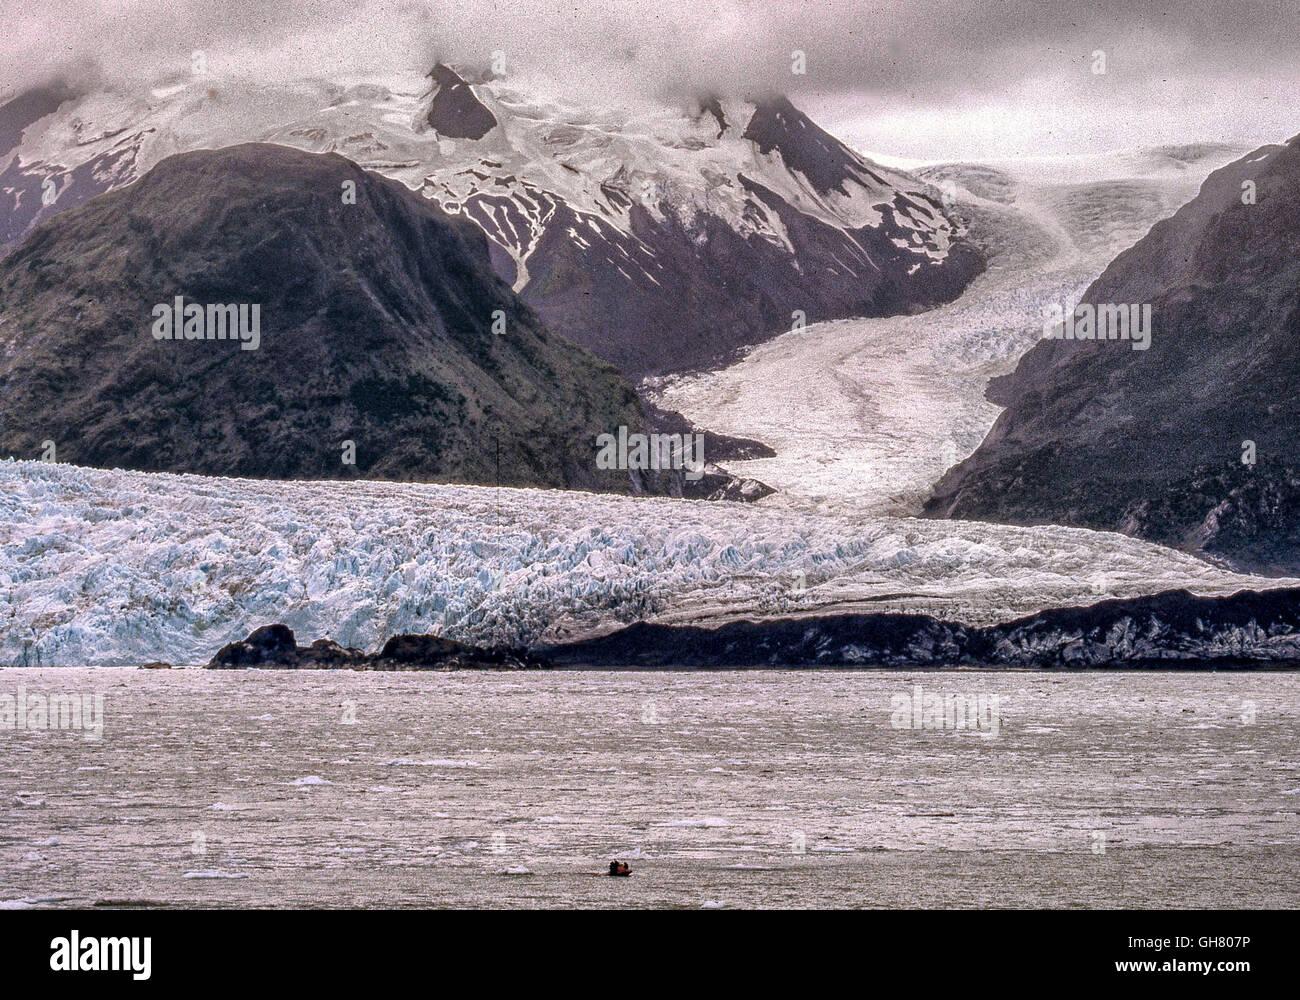 March 8, 2003 - Bernardo O'Higgins National Park, Chile - Impressive tidewater Amalia glacier, also known as - Stock Image